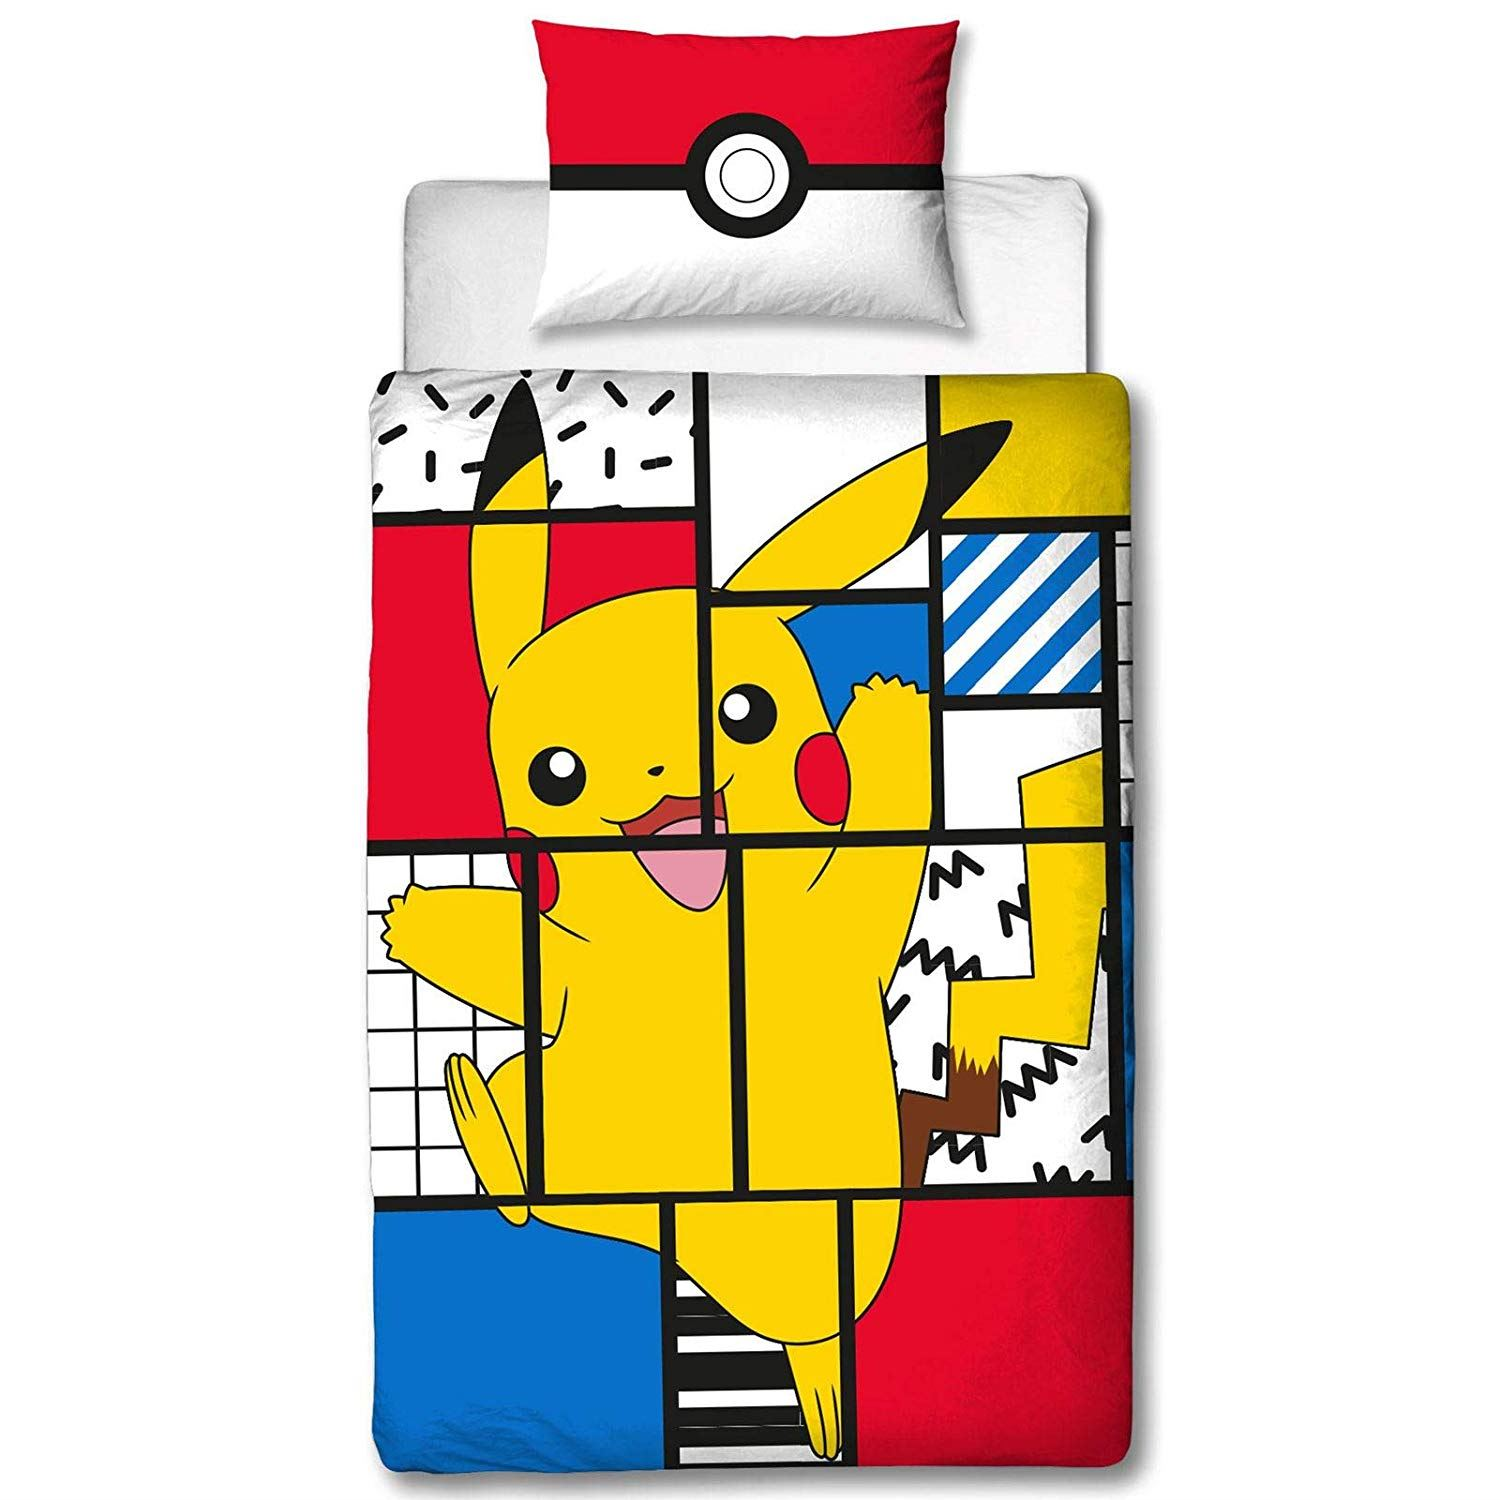 Official-Pokemon-Licensed-Duvet-Covers-Single-Double-Pikachu-Bedding-Gaming thumbnail 29